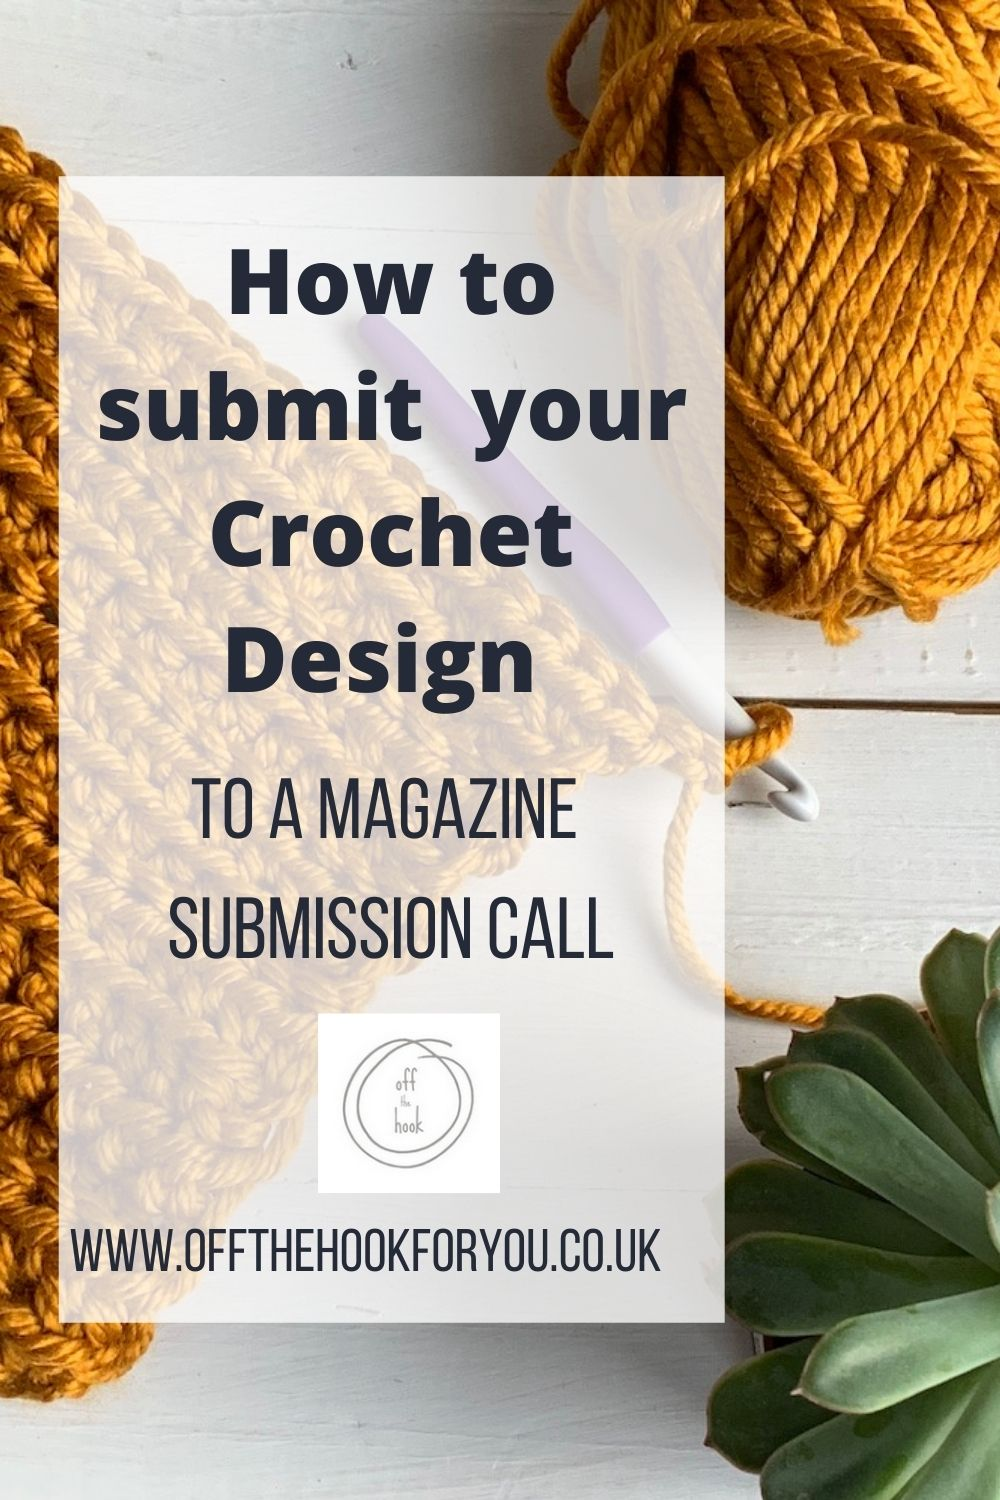 How to submit a crochet design.  Be a crochet designer